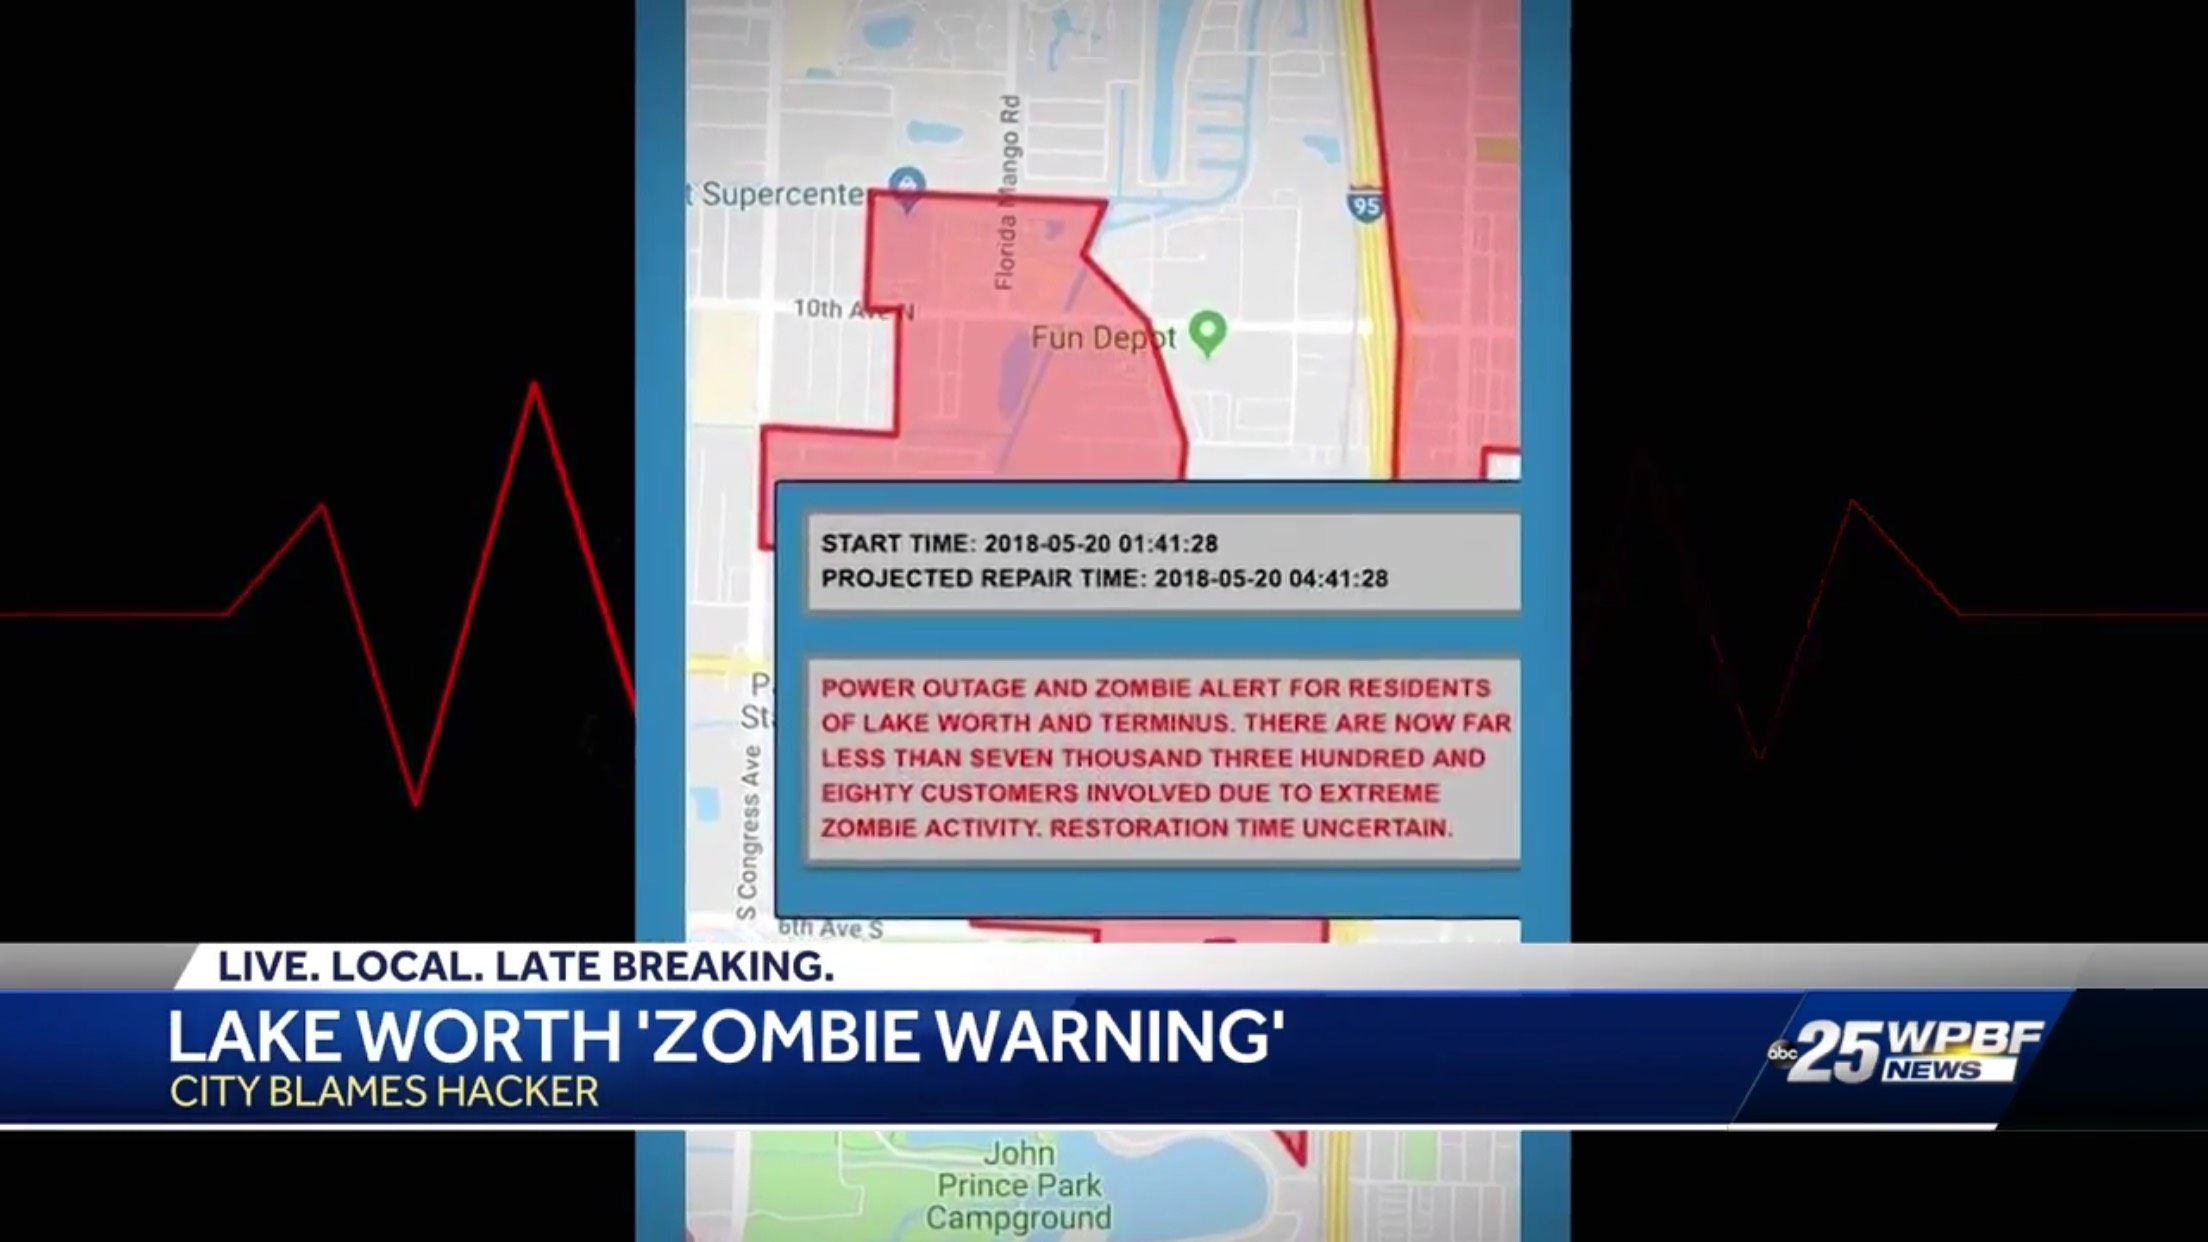 Lake Worth 'Zombie Warning': City Blames Hacker